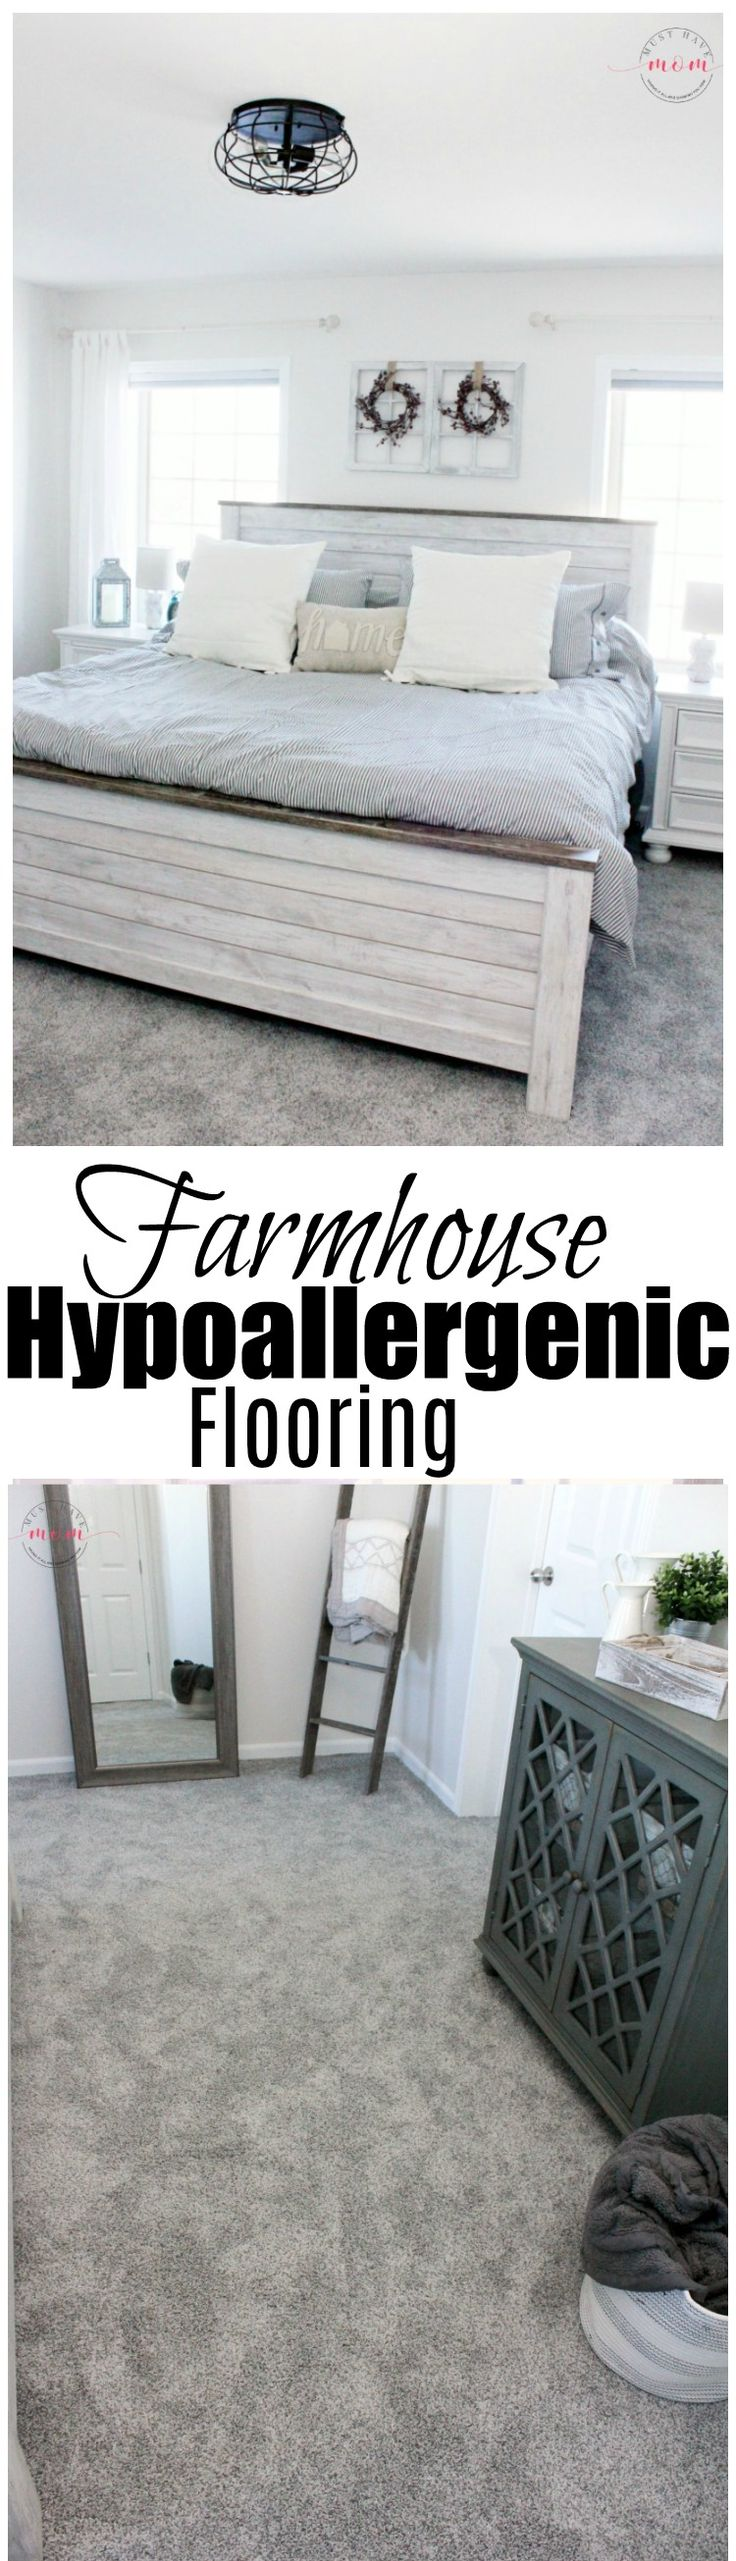 Farmhouse bedroom with hypoallergenic flooring. See the farmhouse decor, color scheme and hypoallergenic flooring picks for this final look! AD